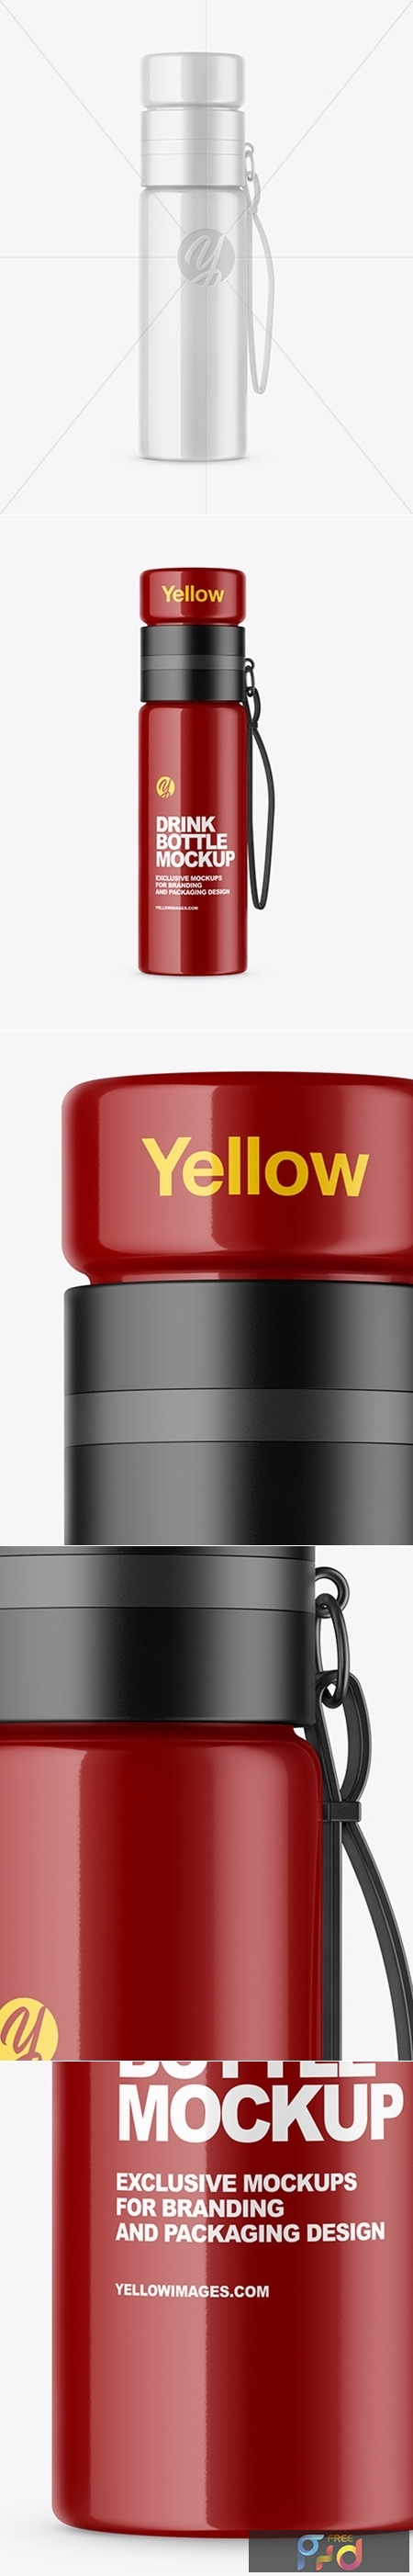 Download Yellowimages Mockups Sport Nutrition Matte Plastic Jar Front View Yellowimages PSD Mockup Templates